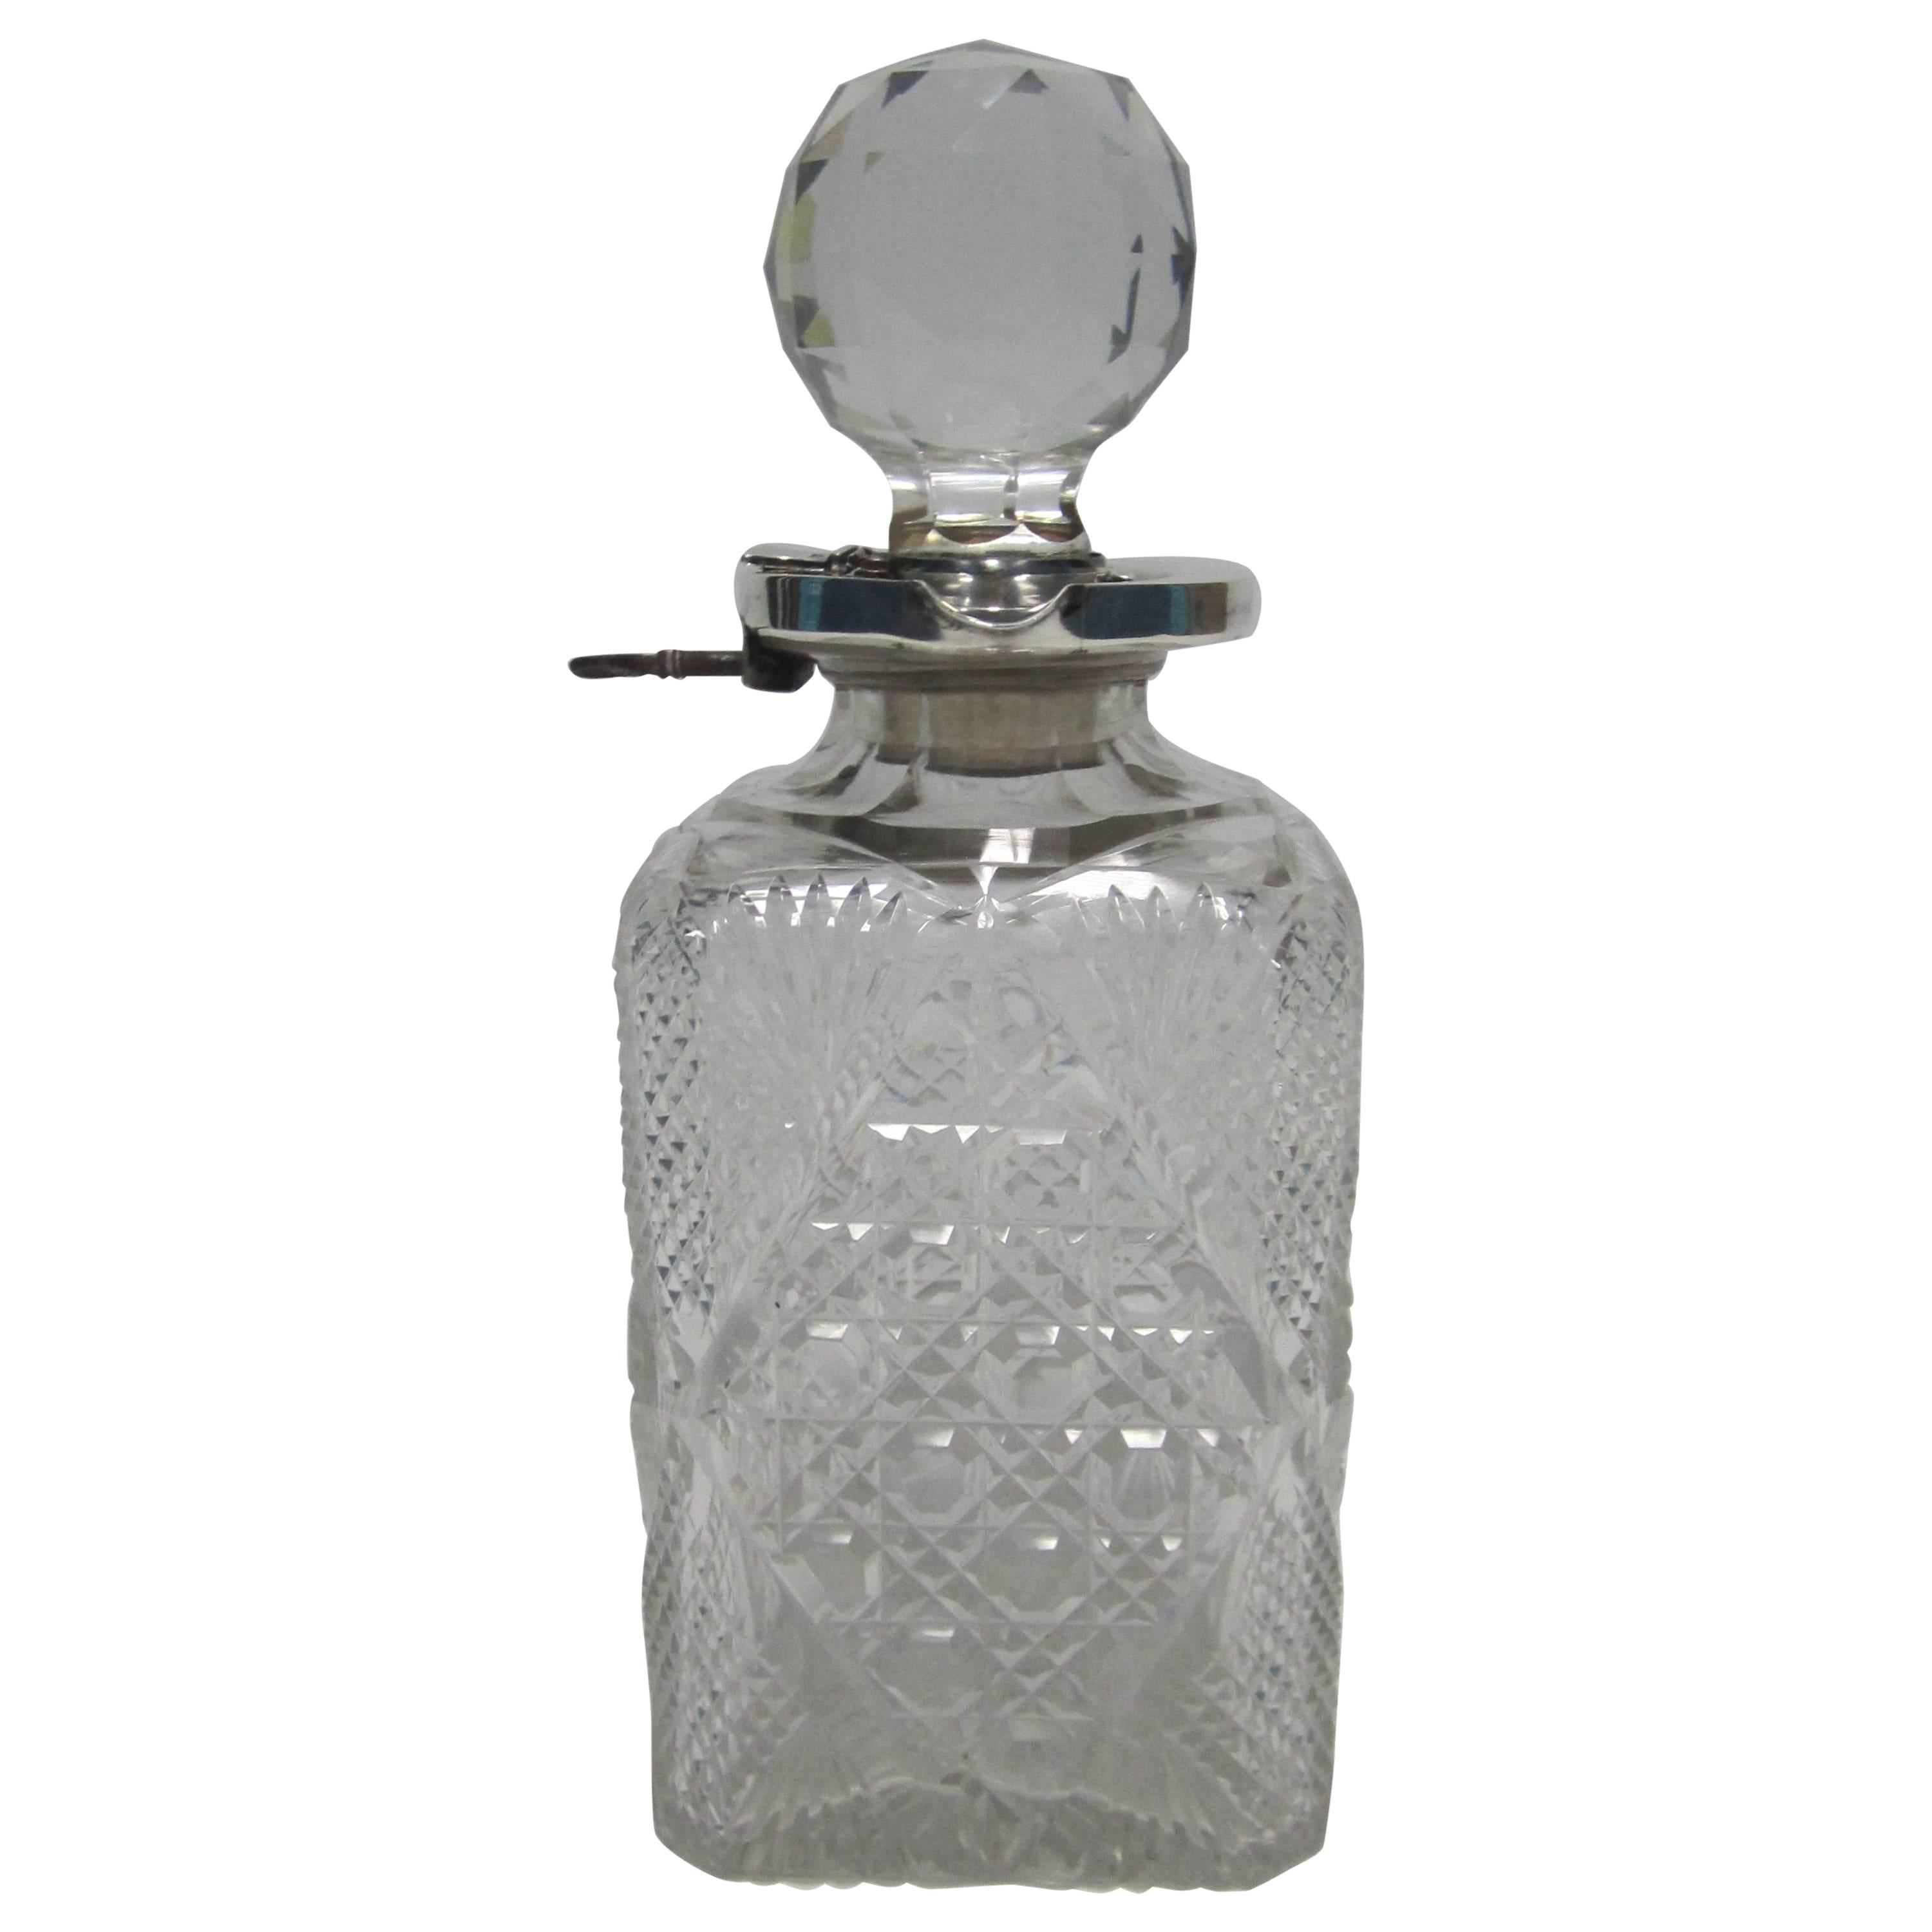 English Sterling Silver and Crystal Liquor Spirit Bar Decanter